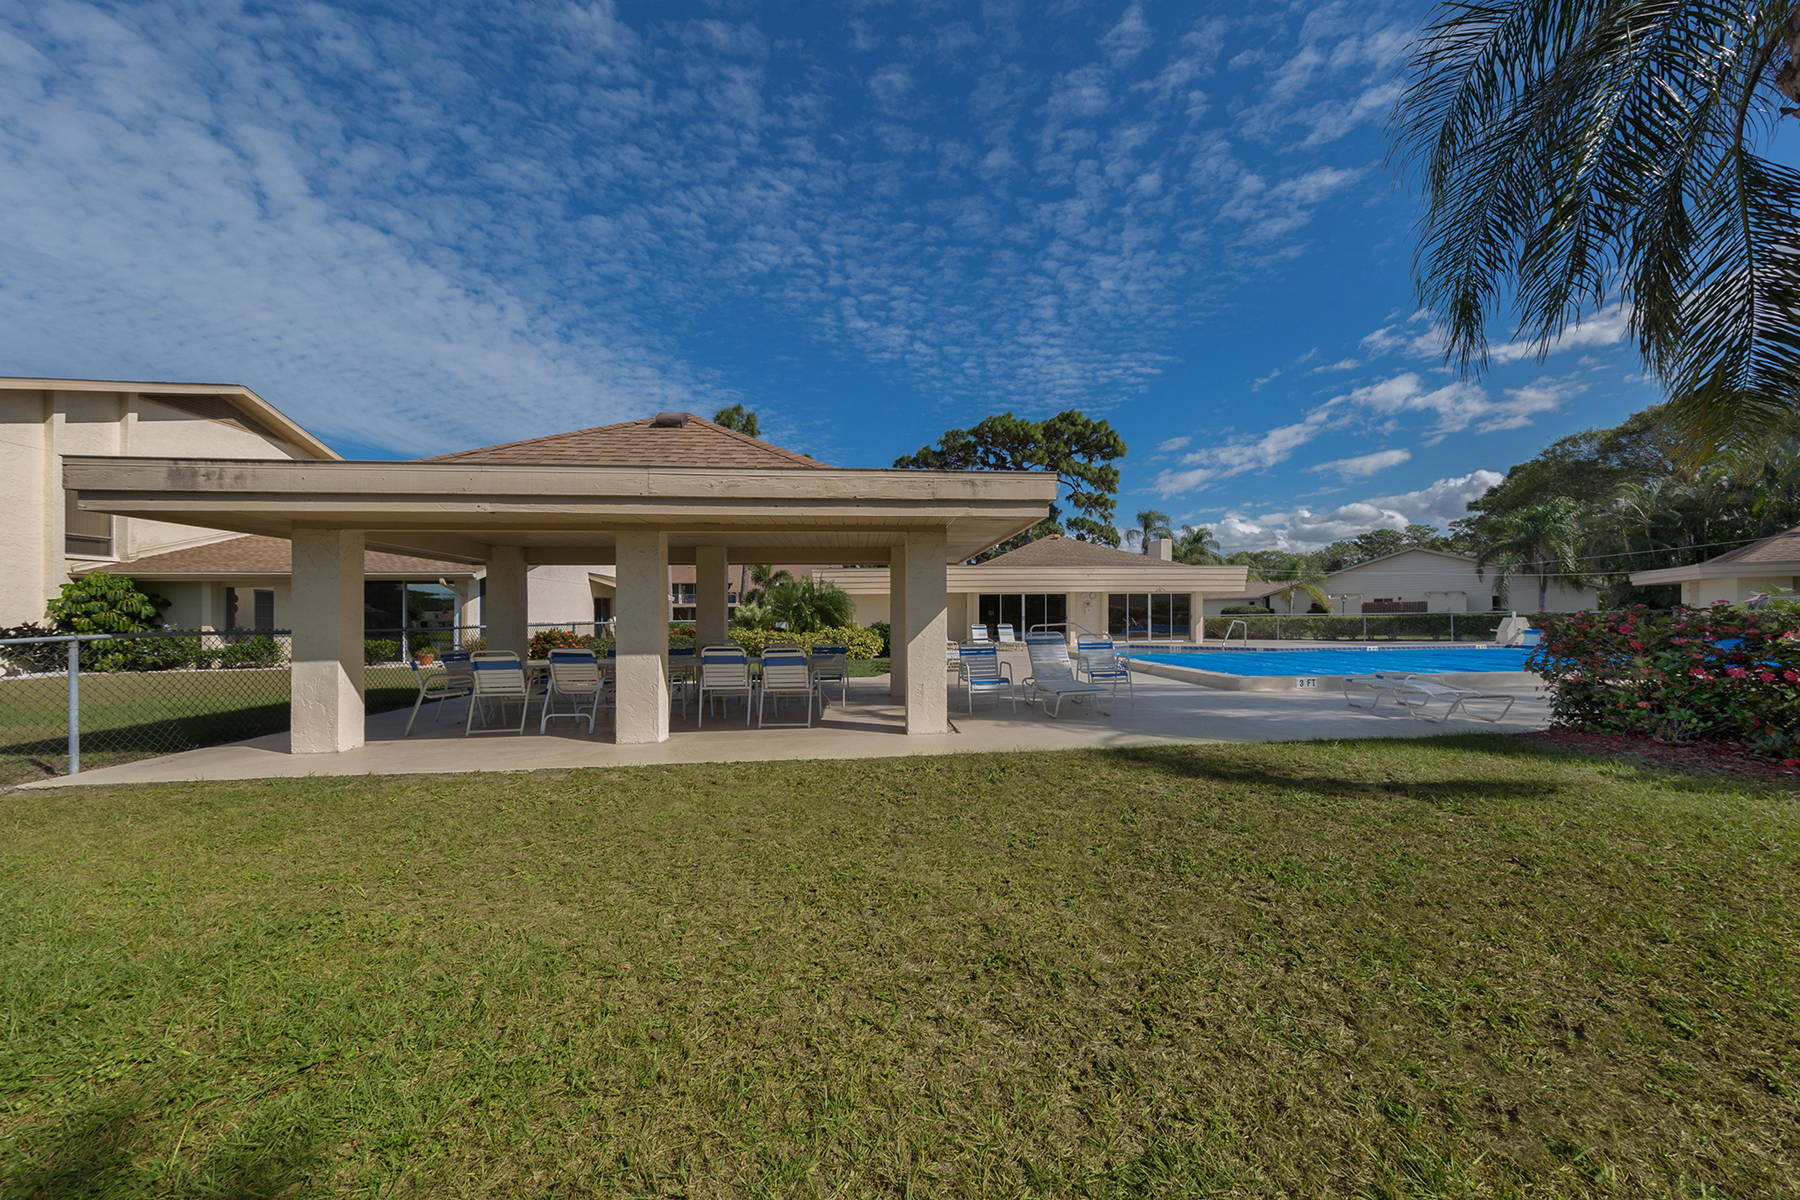 Additional photo for property listing at PINEBROOK LAKE CLUB 1207  Pine Lake Dr Unit 7,  Venice, Florida 34285 United States